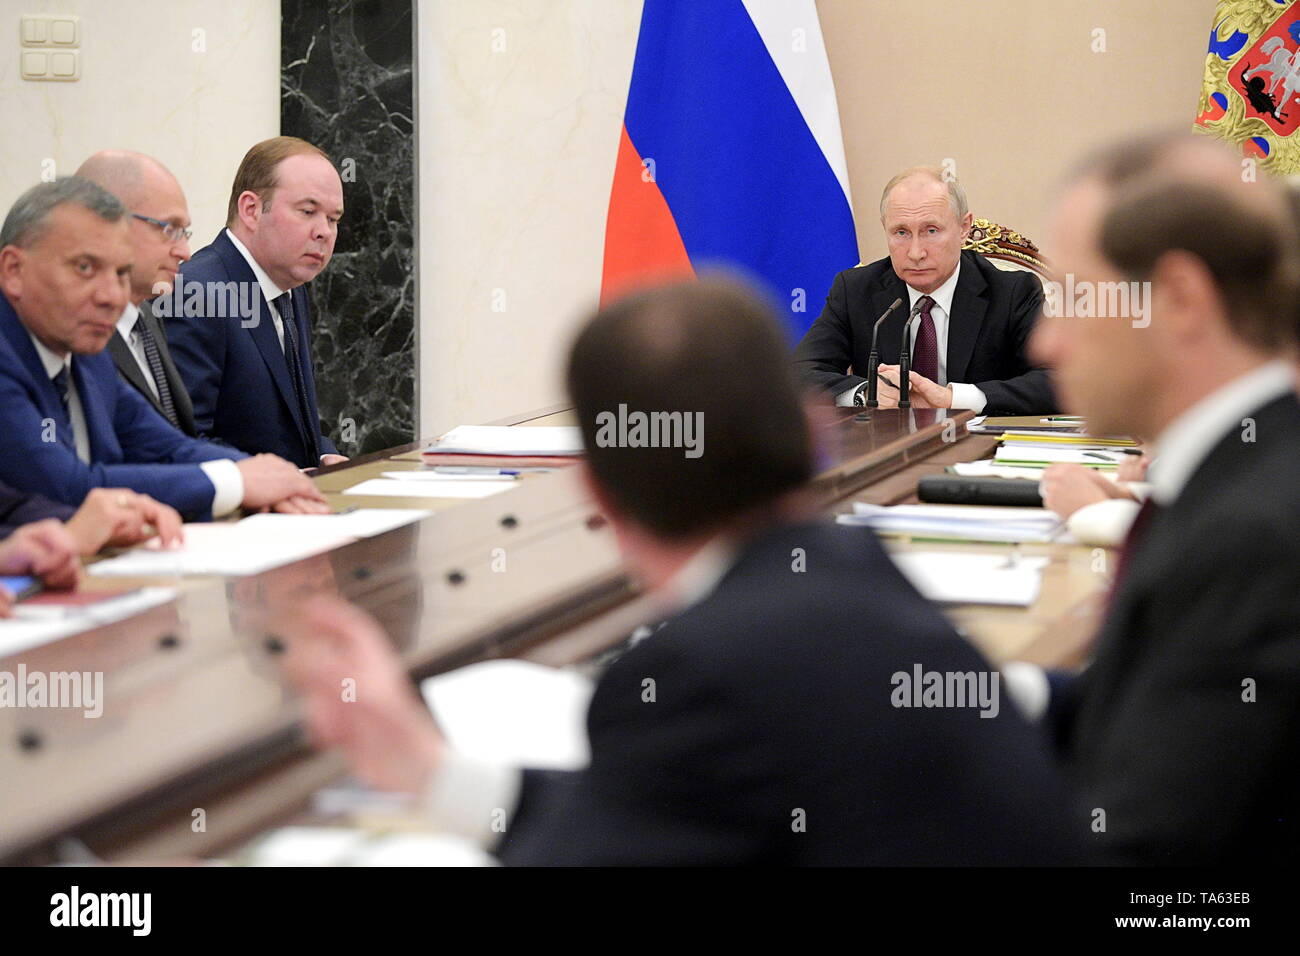 Moscow, Russia. 22nd May, 2019. MOSCOW, RUSSIA - MAY 22, 2019: Russia's President Vladimir Putin (C back) during a meeting with members of the Russian Government at the Moscow Kremlin. Alexei Druzhinin/Russian Presidential Press and Information Office/TASS Credit: ITAR-TASS News Agency/Alamy Live News - Stock Image